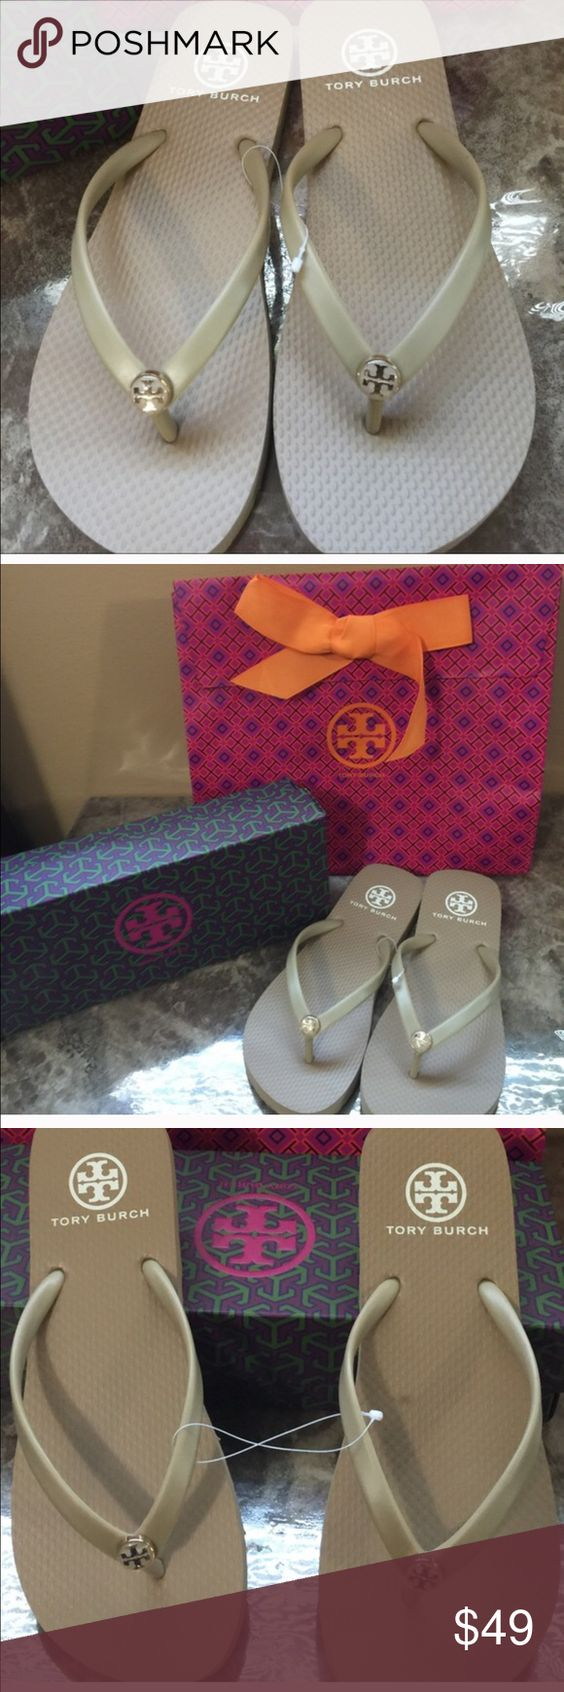 """Tory Burch sandals Tory Burch flip-flops. Khaki color, double """"T"""" medallion in goldtone and enamel. PVC upper/ rubber lining and sole. Authentic, Brand New, khaki color, size 7, shoebox & bag included. ❌NO TRADES❌ Tory Burch Shoes Sandals"""